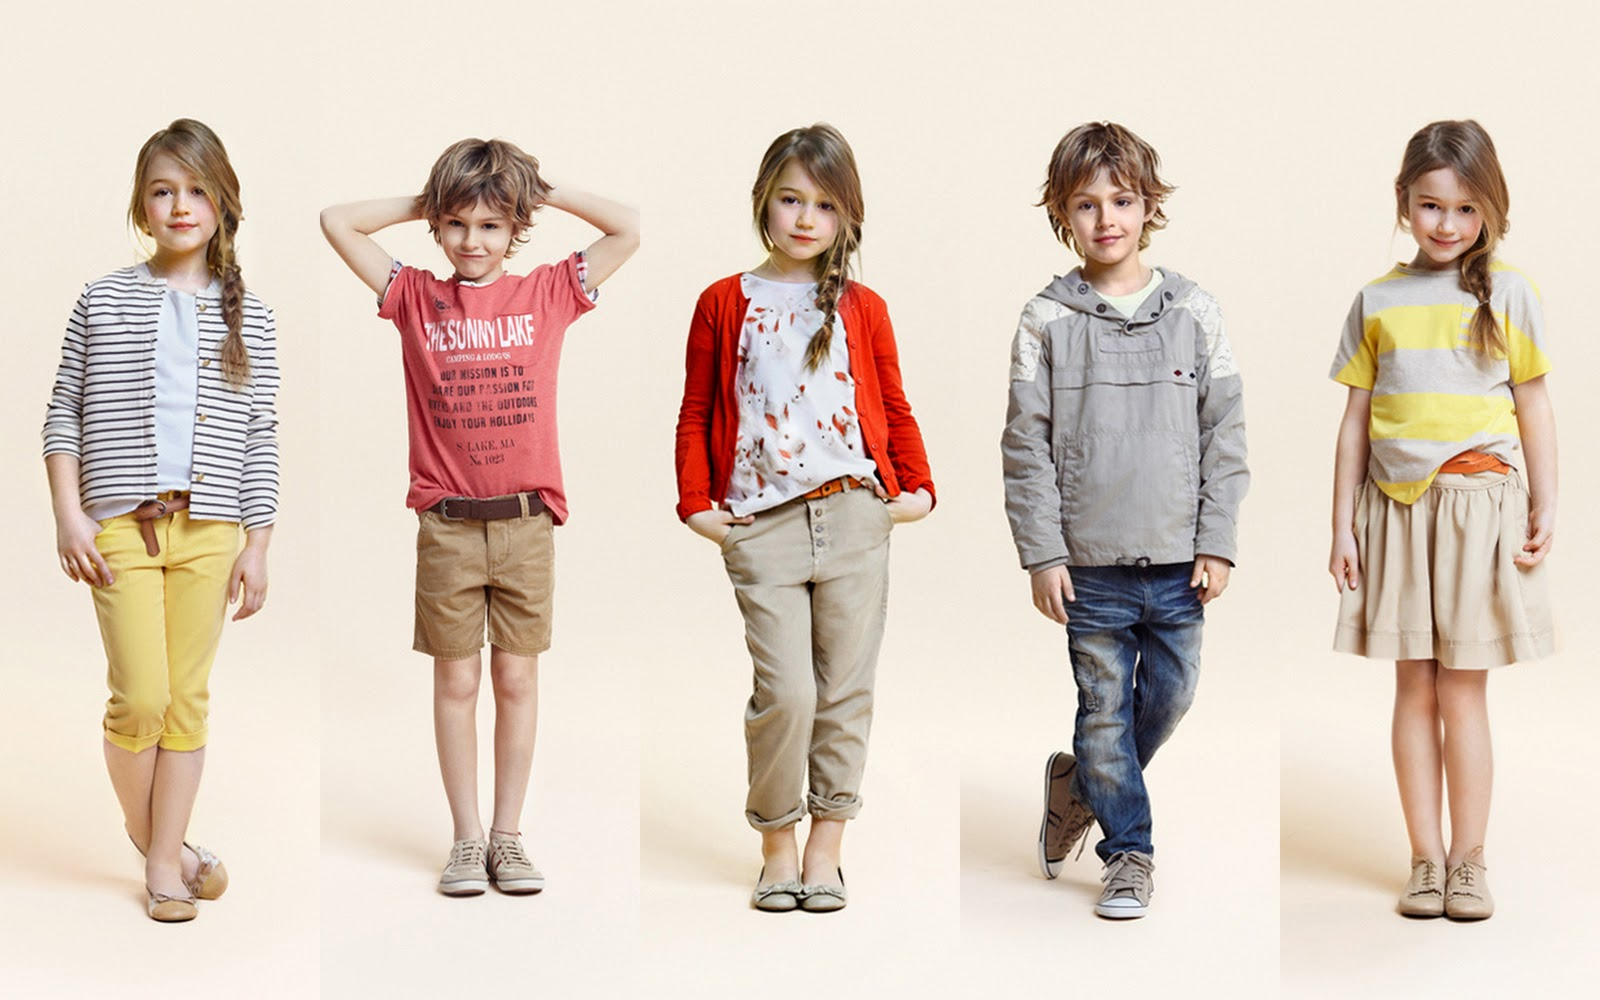 contrast and compare fashion trends of your generation with those of your parents Global trends in education  by contrast, in the most industrialized and developed countries, higher-education enrollment as of 2005 reached approximately half of the age group,  and private preschools frequently accounted for a majority of the options available to parents.